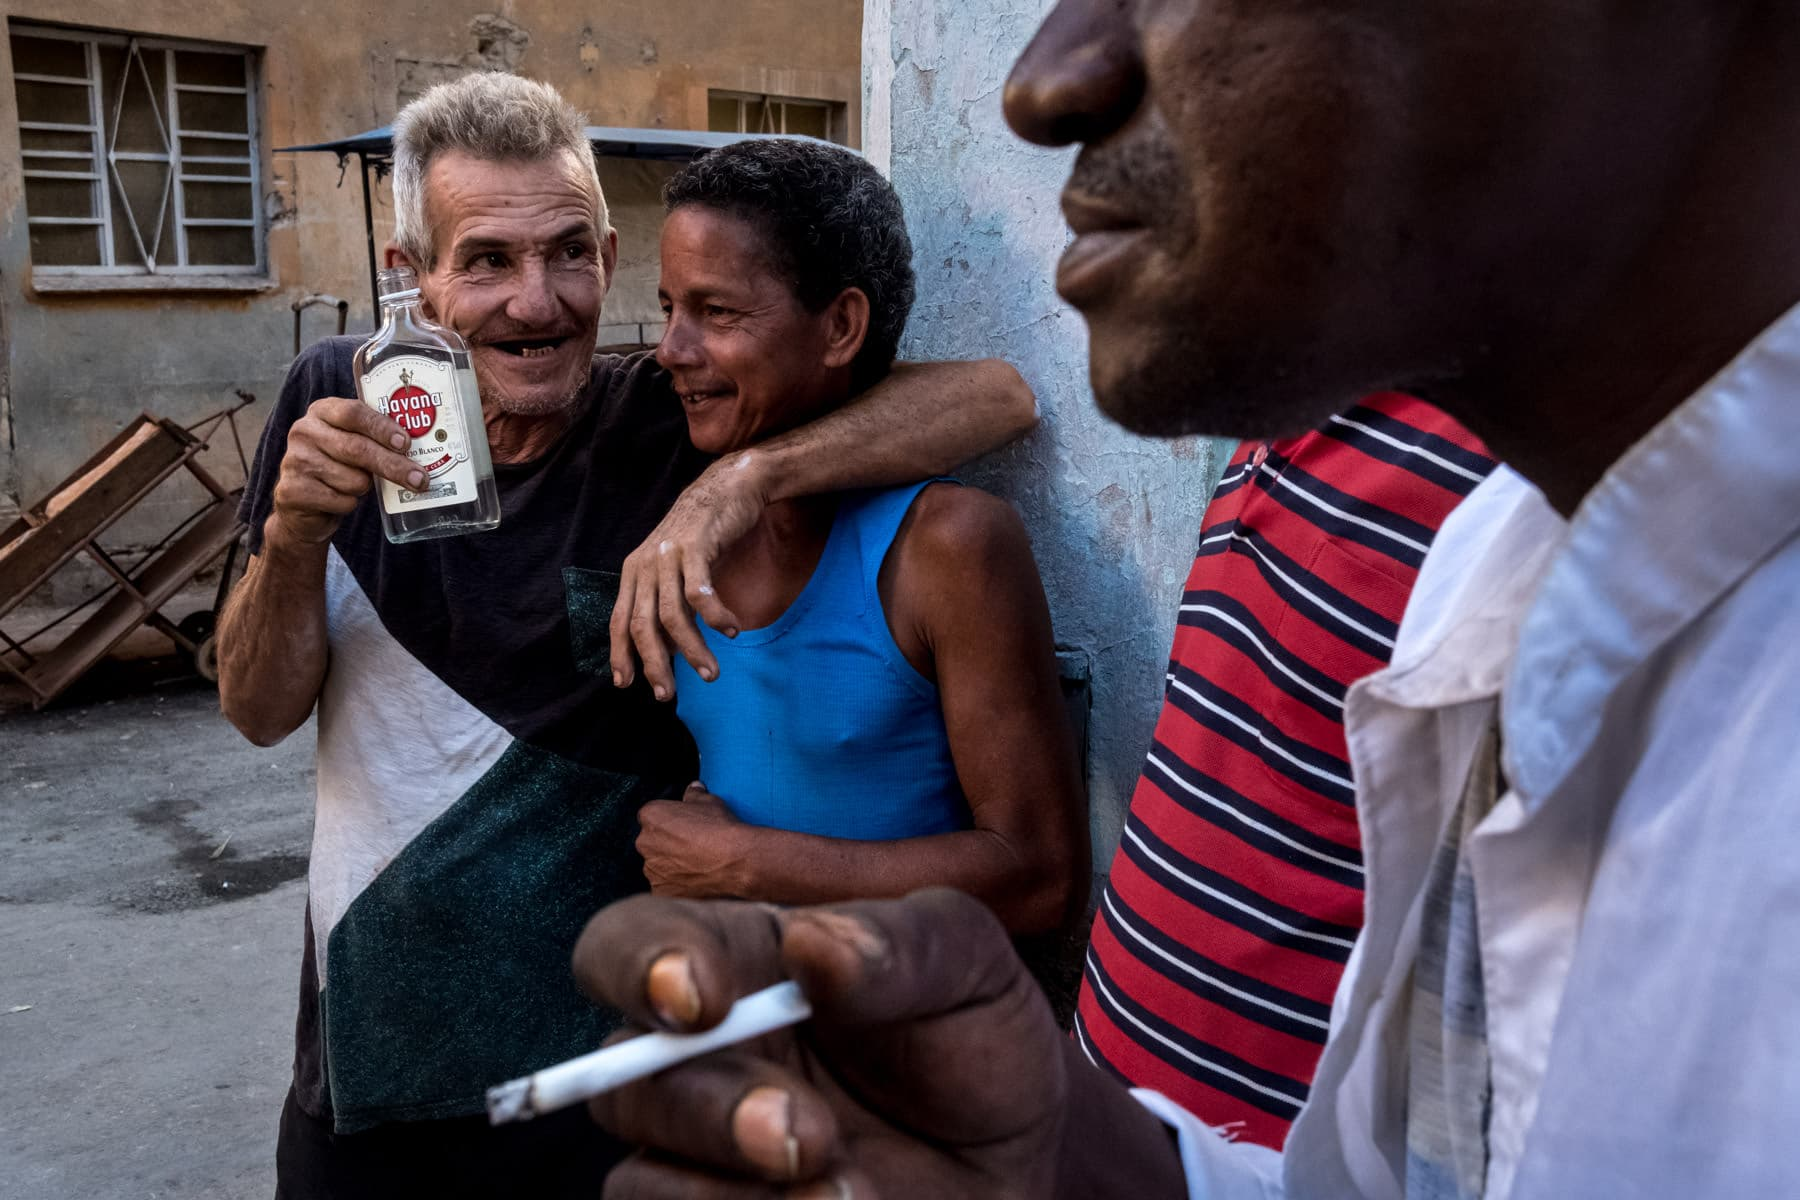 Old men drinking Havana Club rum and smoking on a street corner taken by Havana street photographer Matt Badenoch